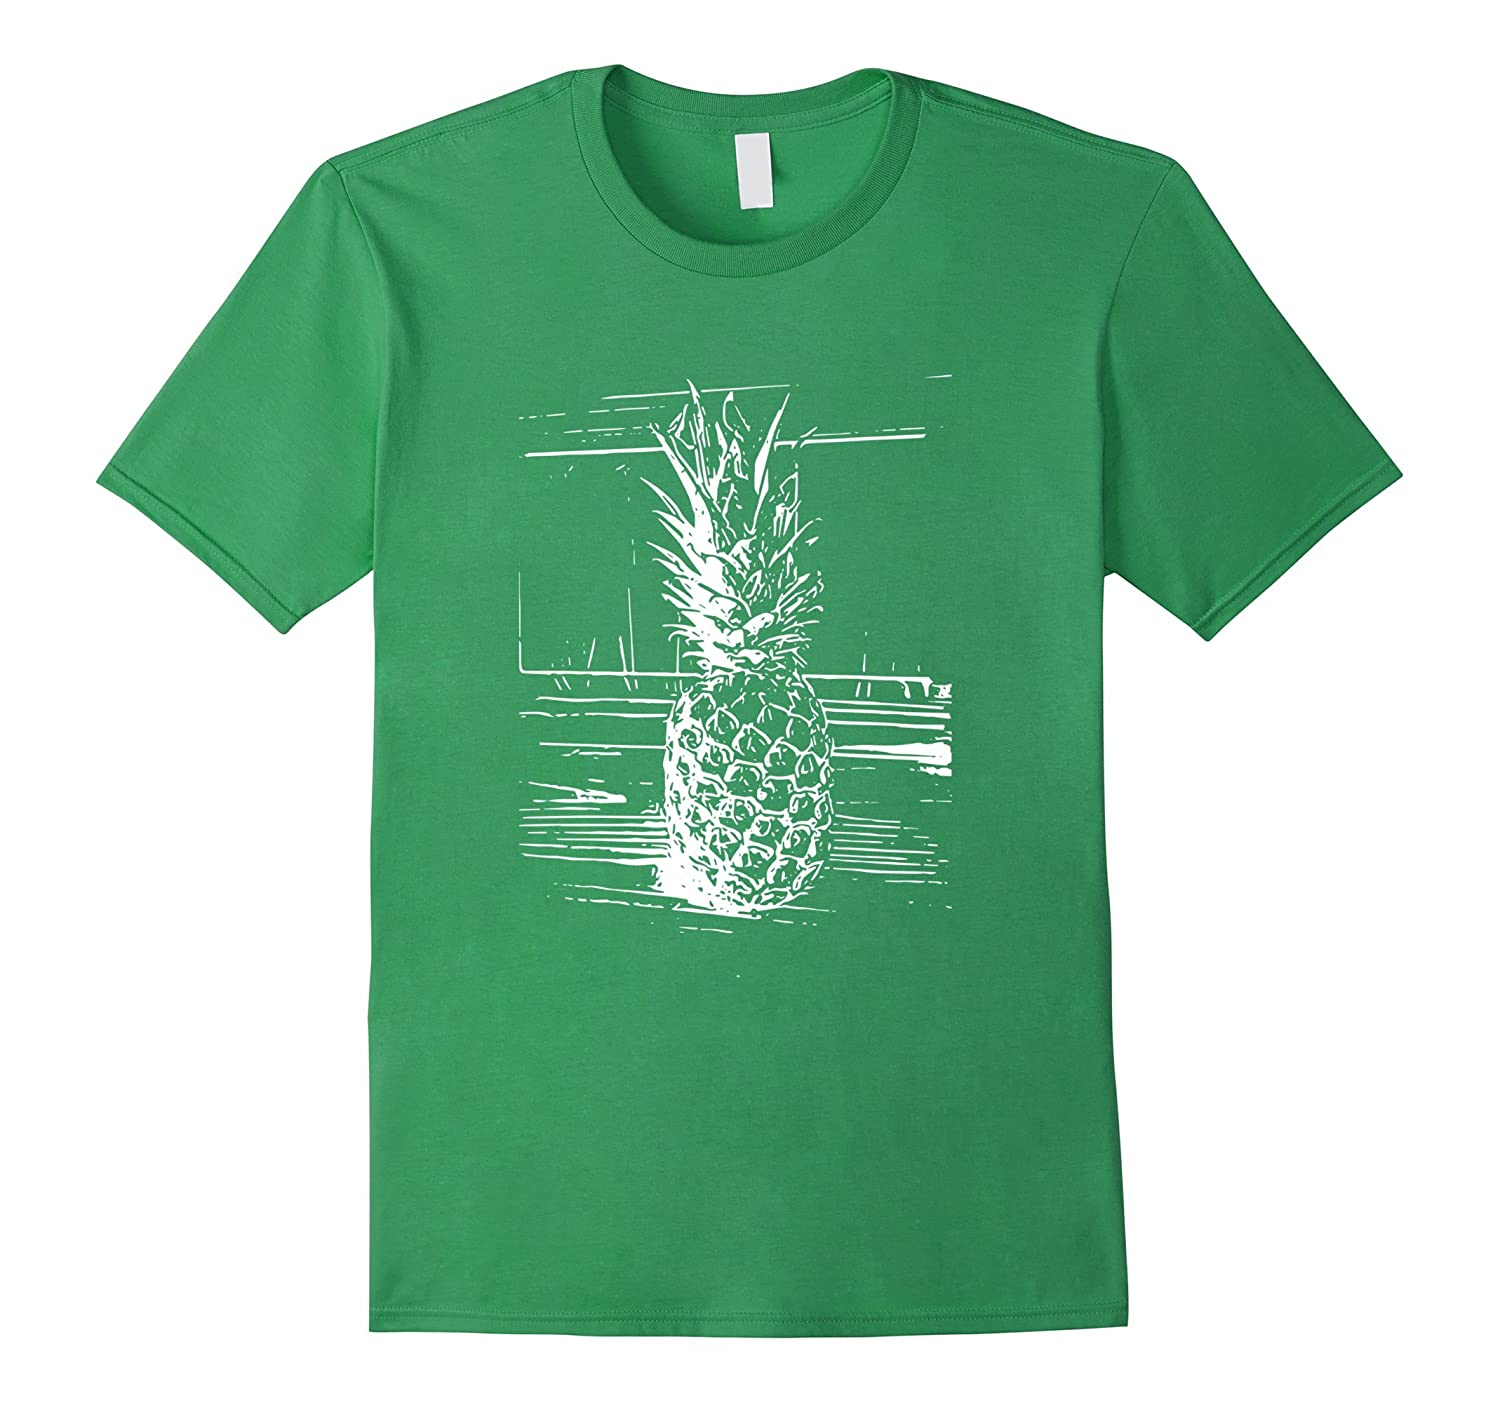 b1441afa0472 Fun Pineapple Fruit T-Shirt Summer Picnic Pineapple Tee-TH - TEEHELEN